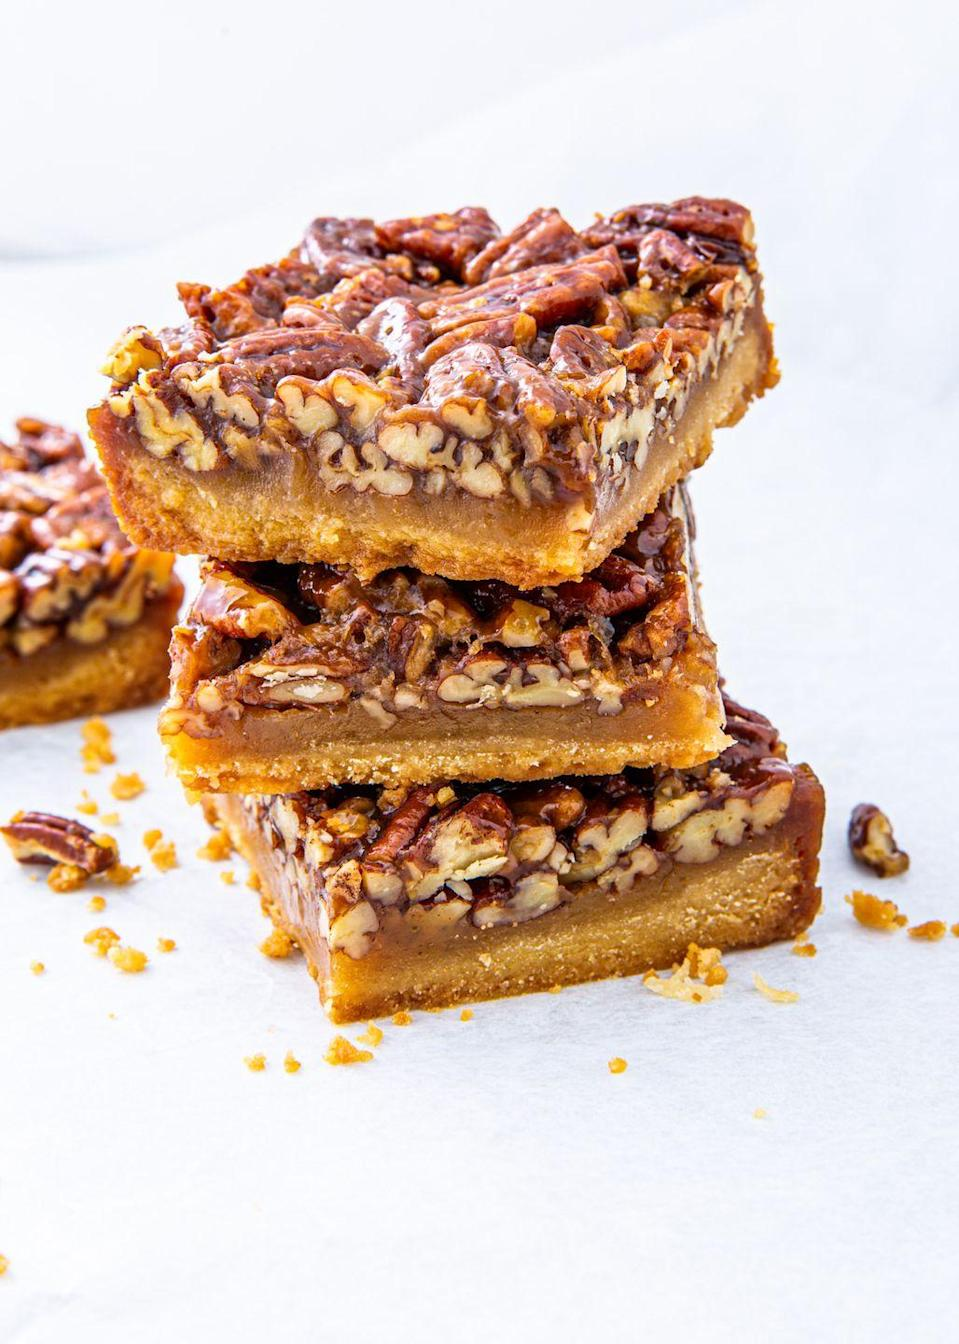 "<p>A handheld version of pecan pie? We're in! </p><p>Get the recipe from <a href=""https://www.delish.com/cooking/recipe-ideas/recipes/a44598/pecan-pie-bars-recipe-best-dessert-bars/"" rel=""nofollow noopener"" target=""_blank"" data-ylk=""slk:Delish"" class=""link rapid-noclick-resp"">Delish</a>.</p>"